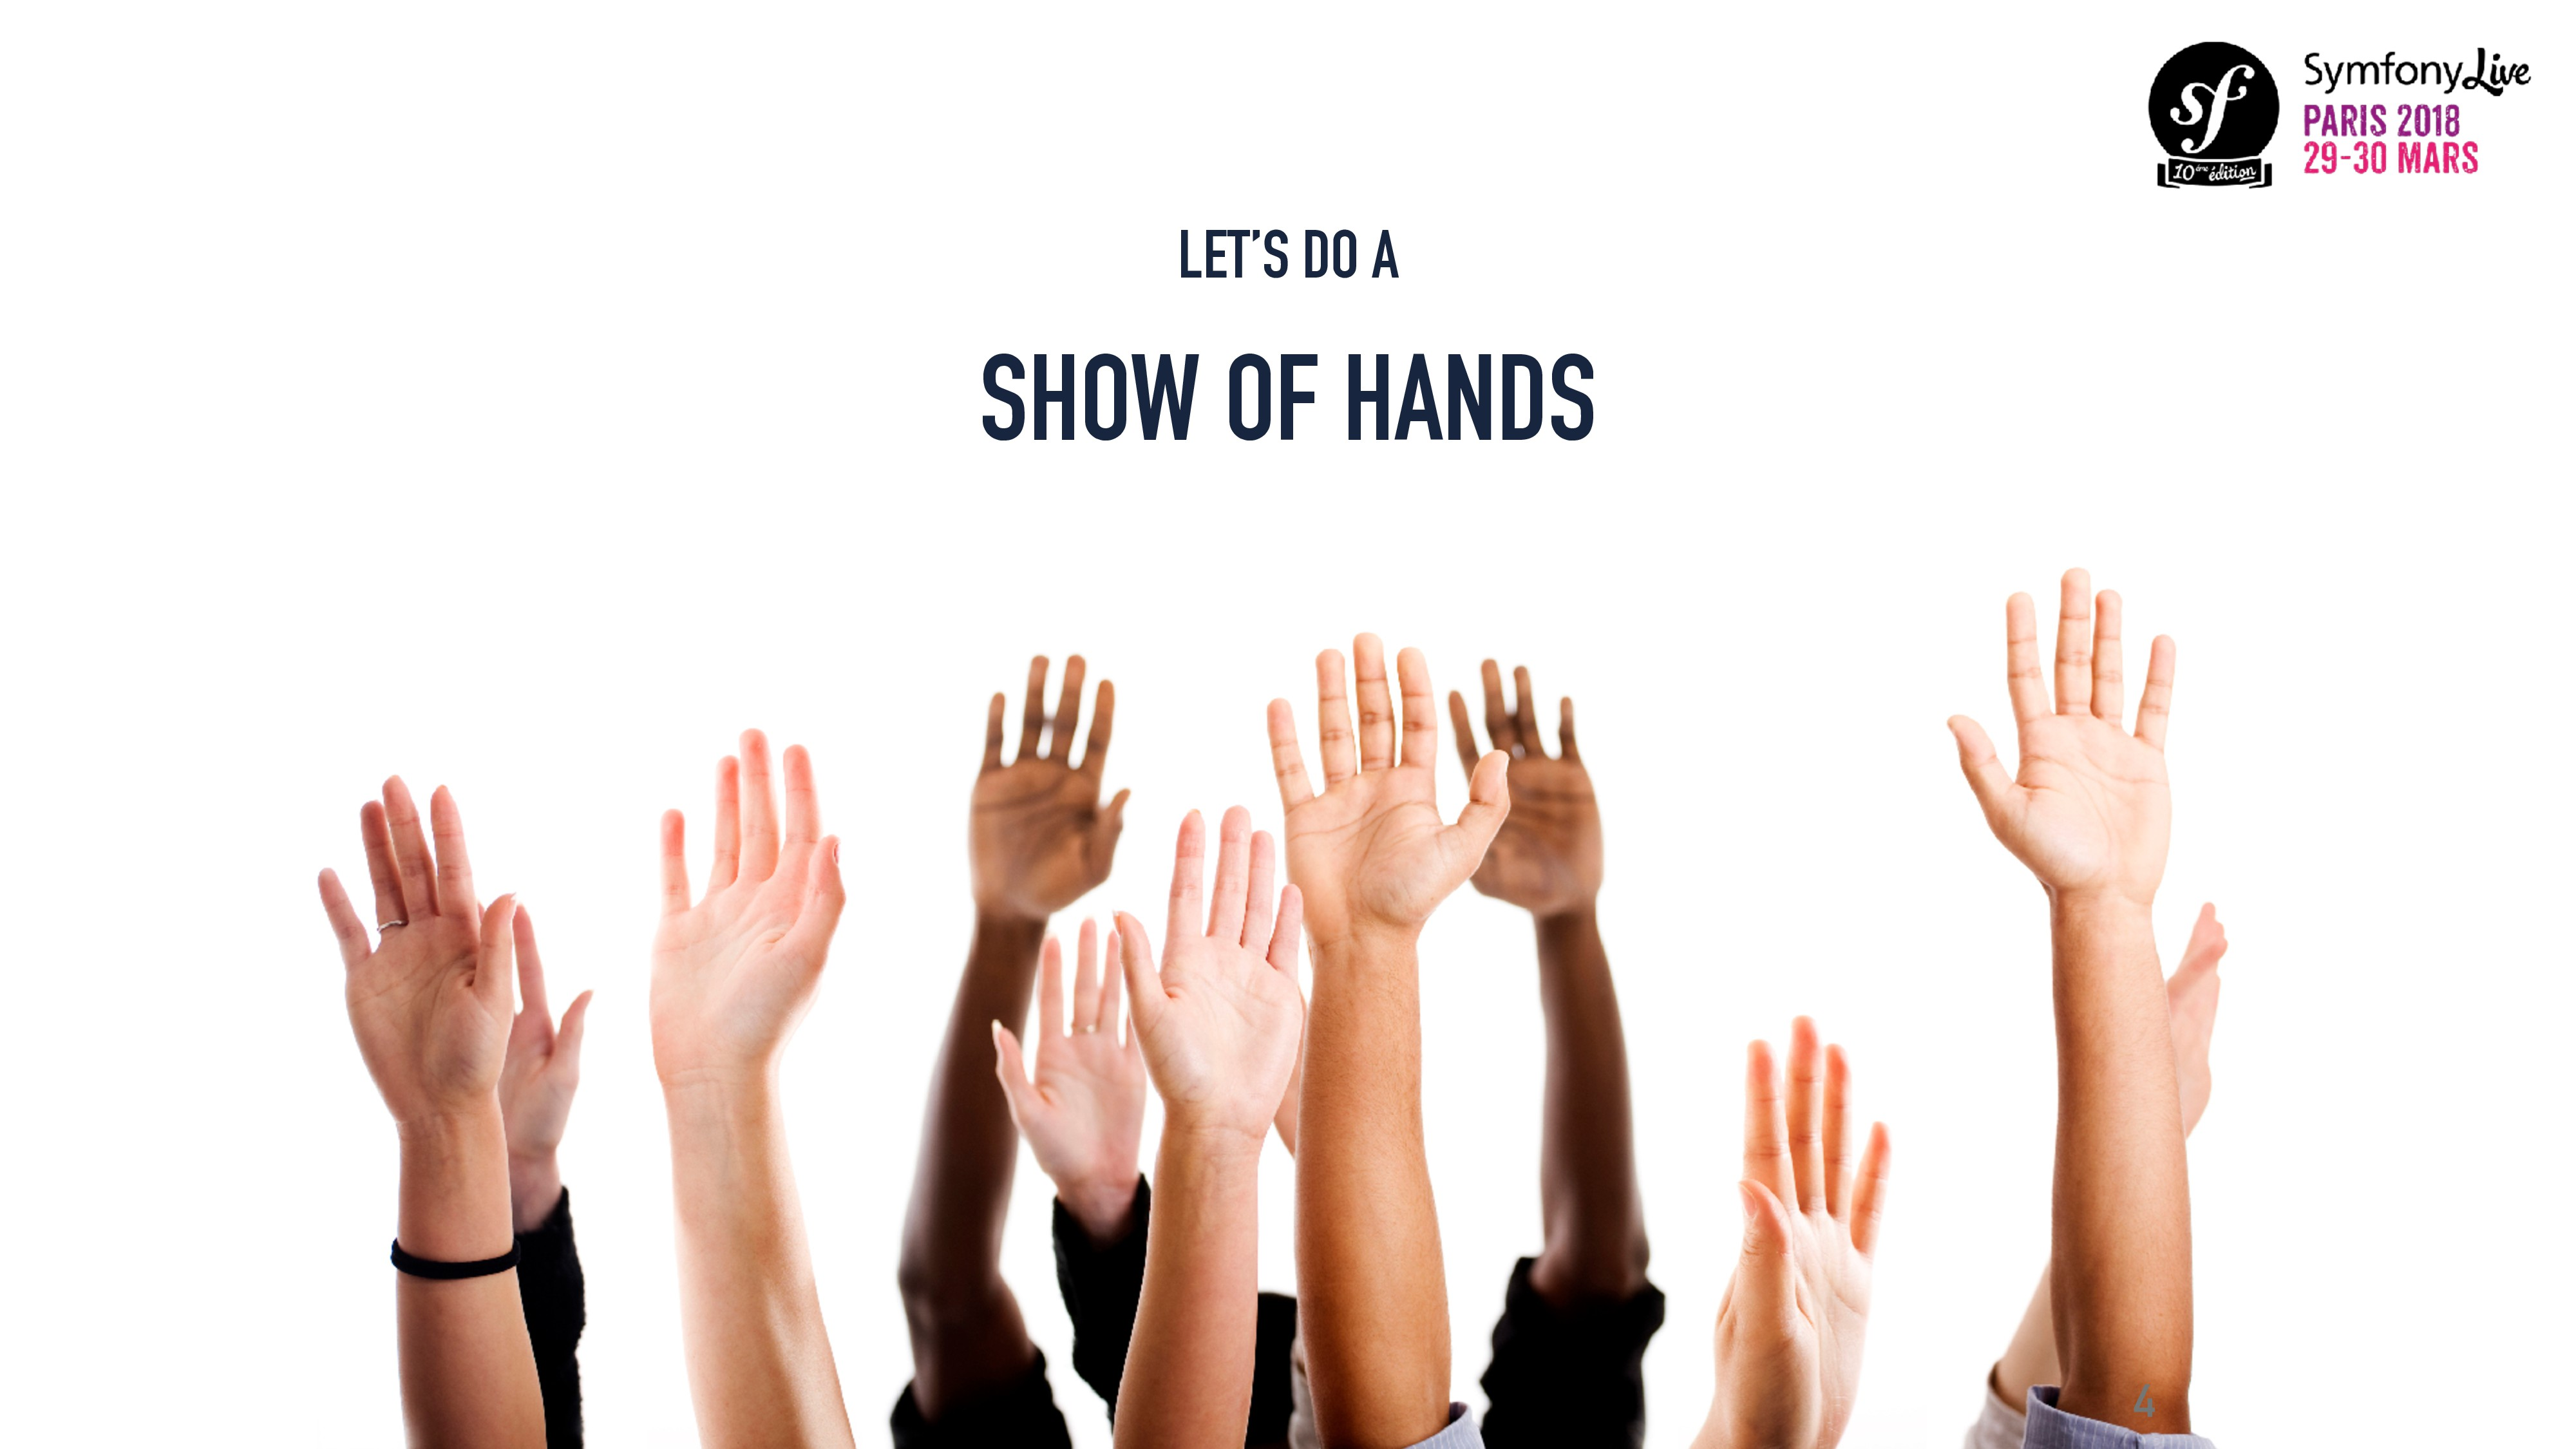 LET'S DO A SHOW OF HANDS 4